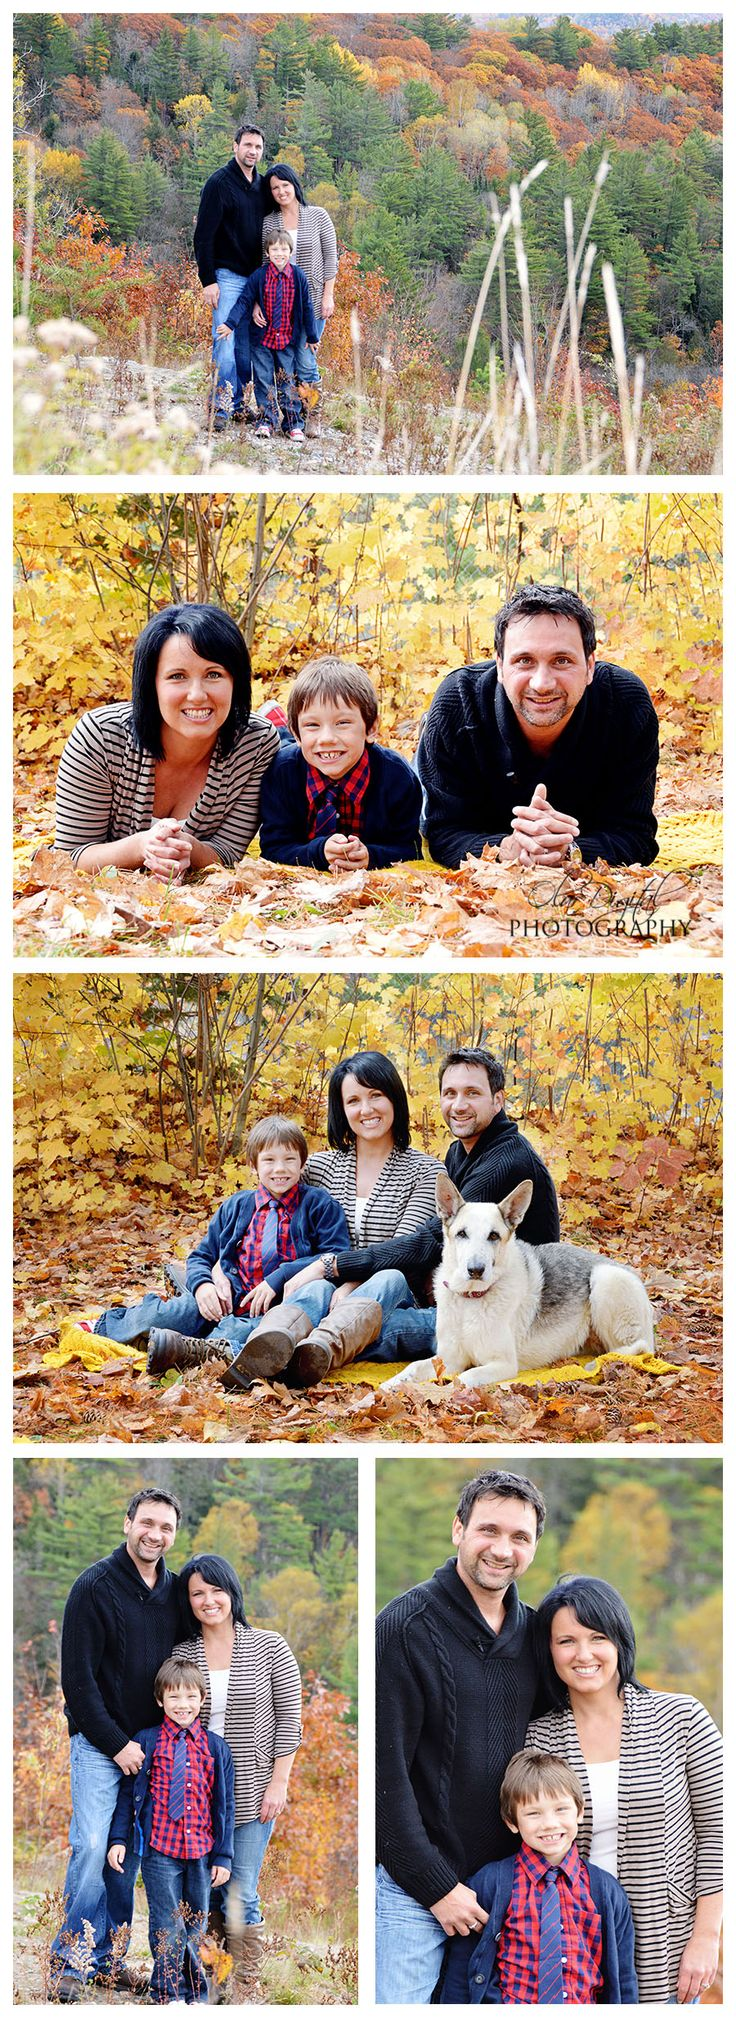 Family poses - one kid Family poses with dog